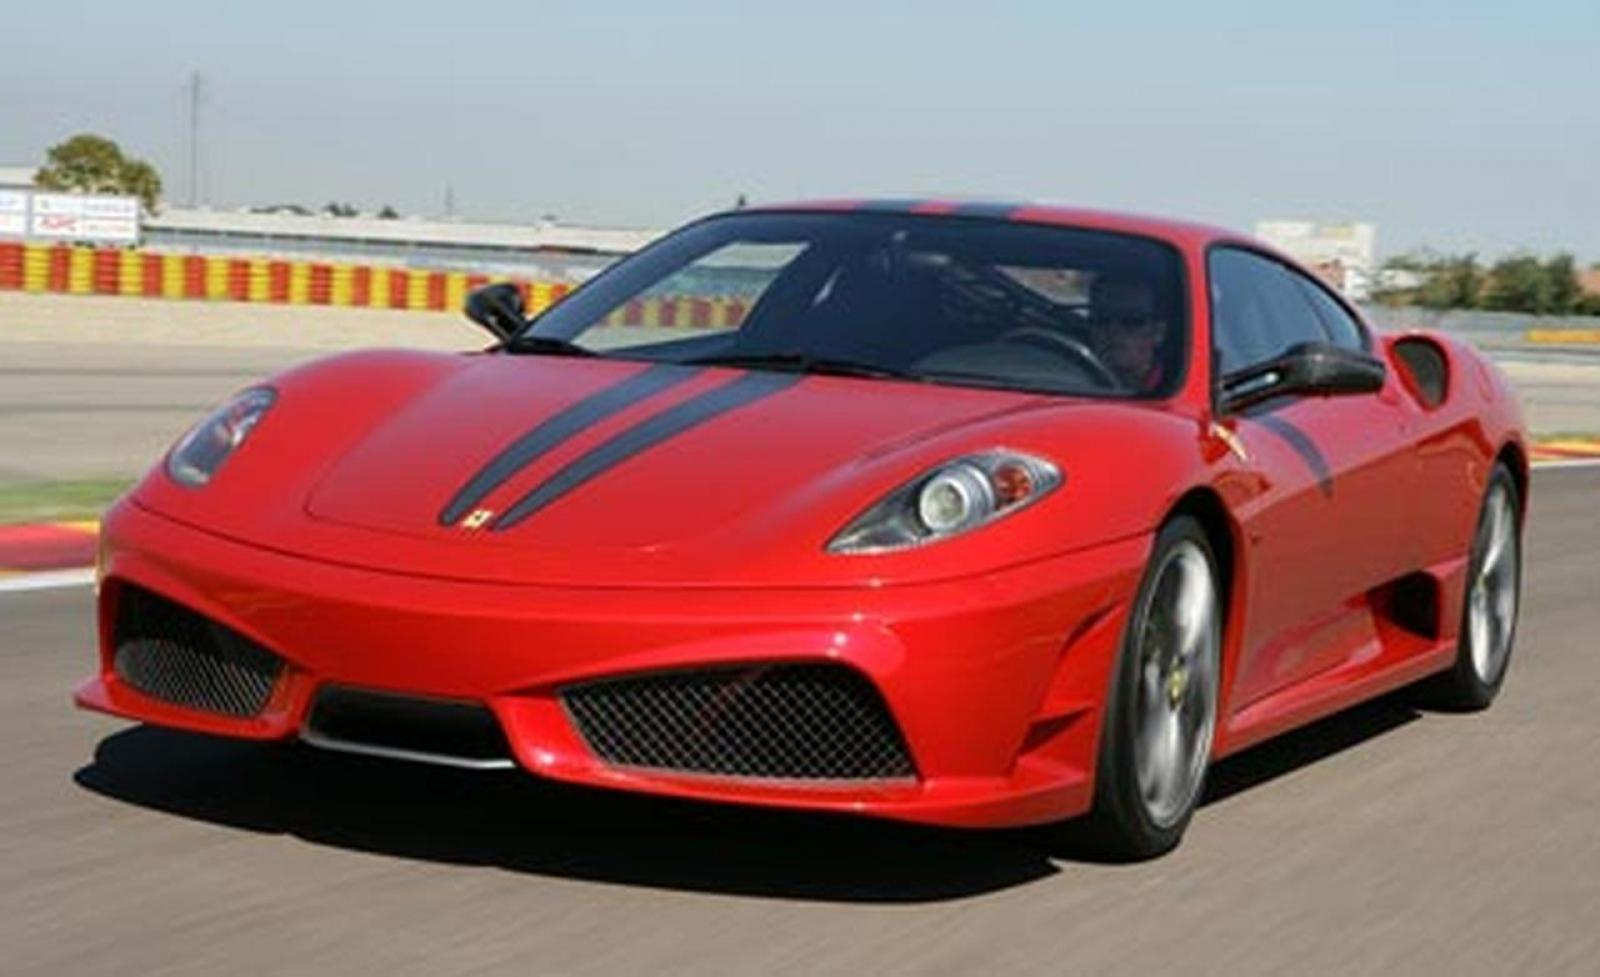 2009 ferrari 430 scuderia information and photos zombiedrive. Black Bedroom Furniture Sets. Home Design Ideas